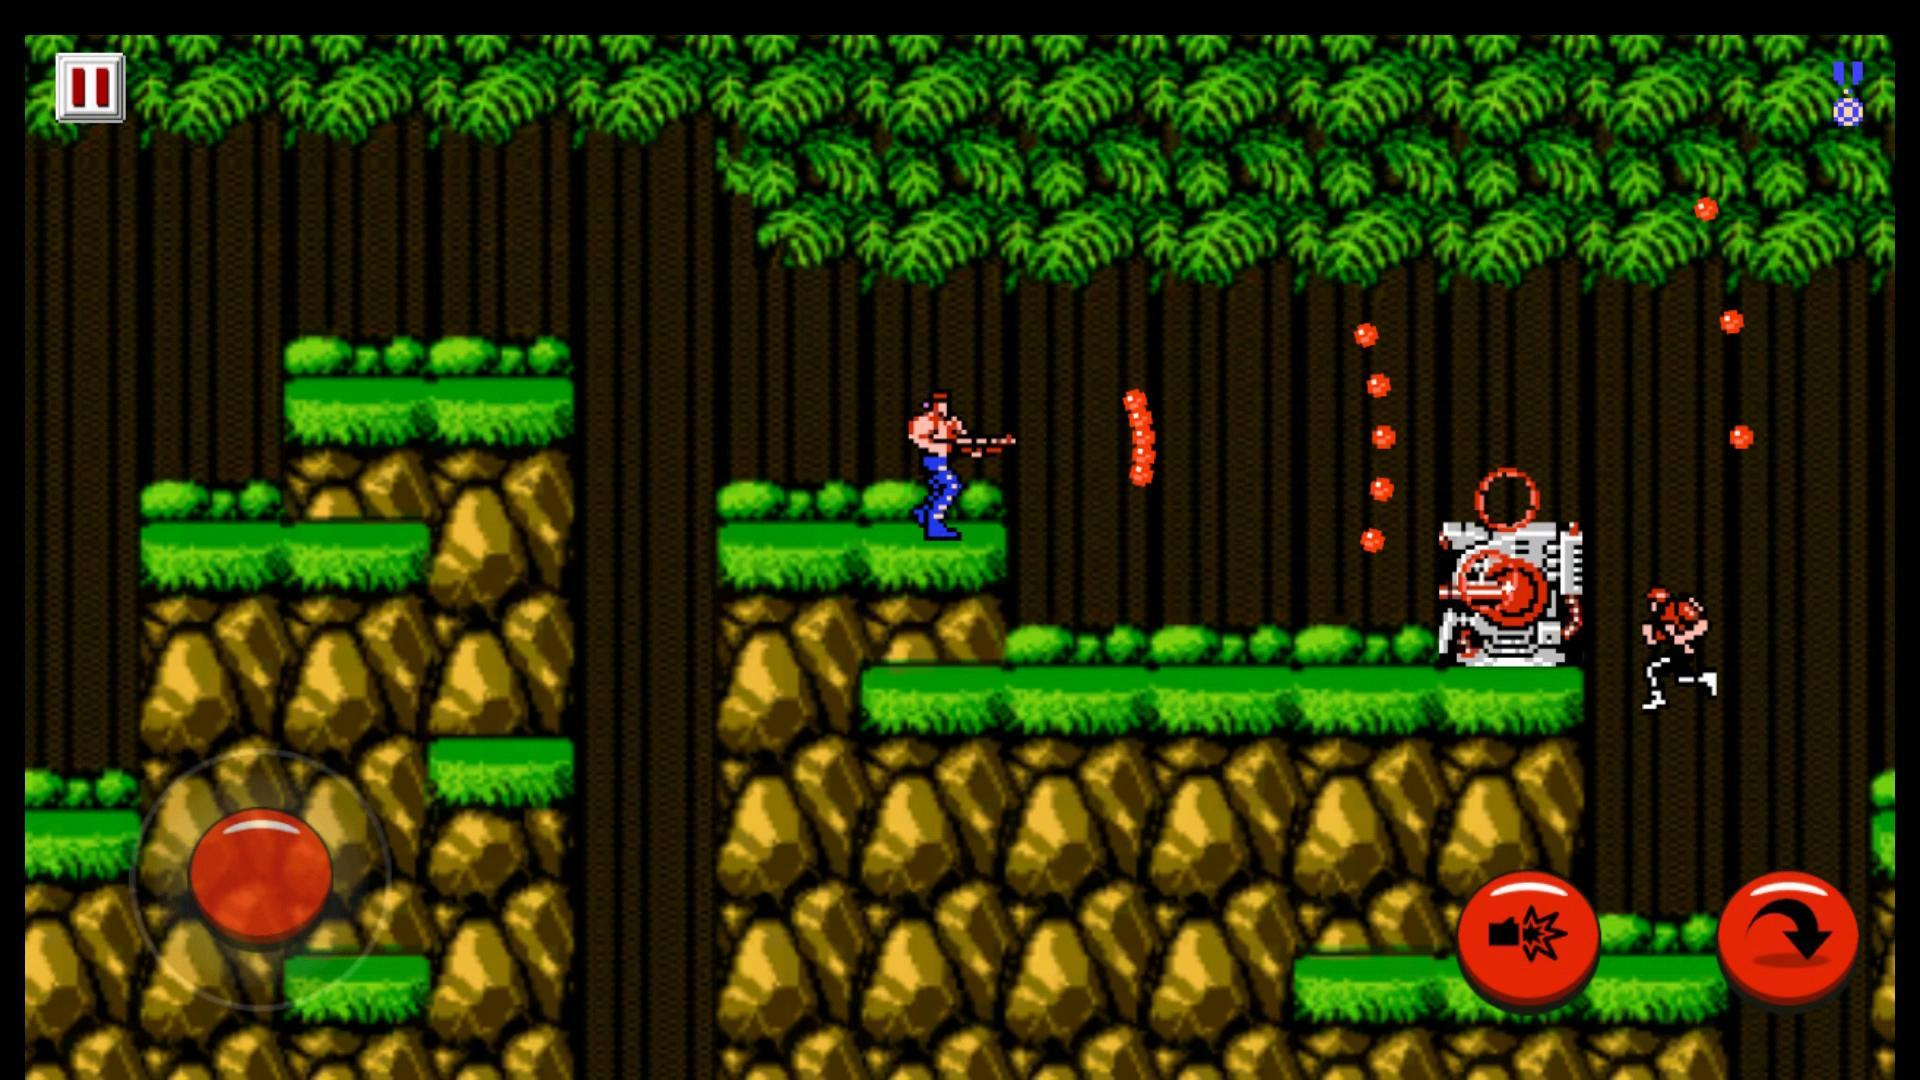 Classic Contra 2017 for Android - APK Download